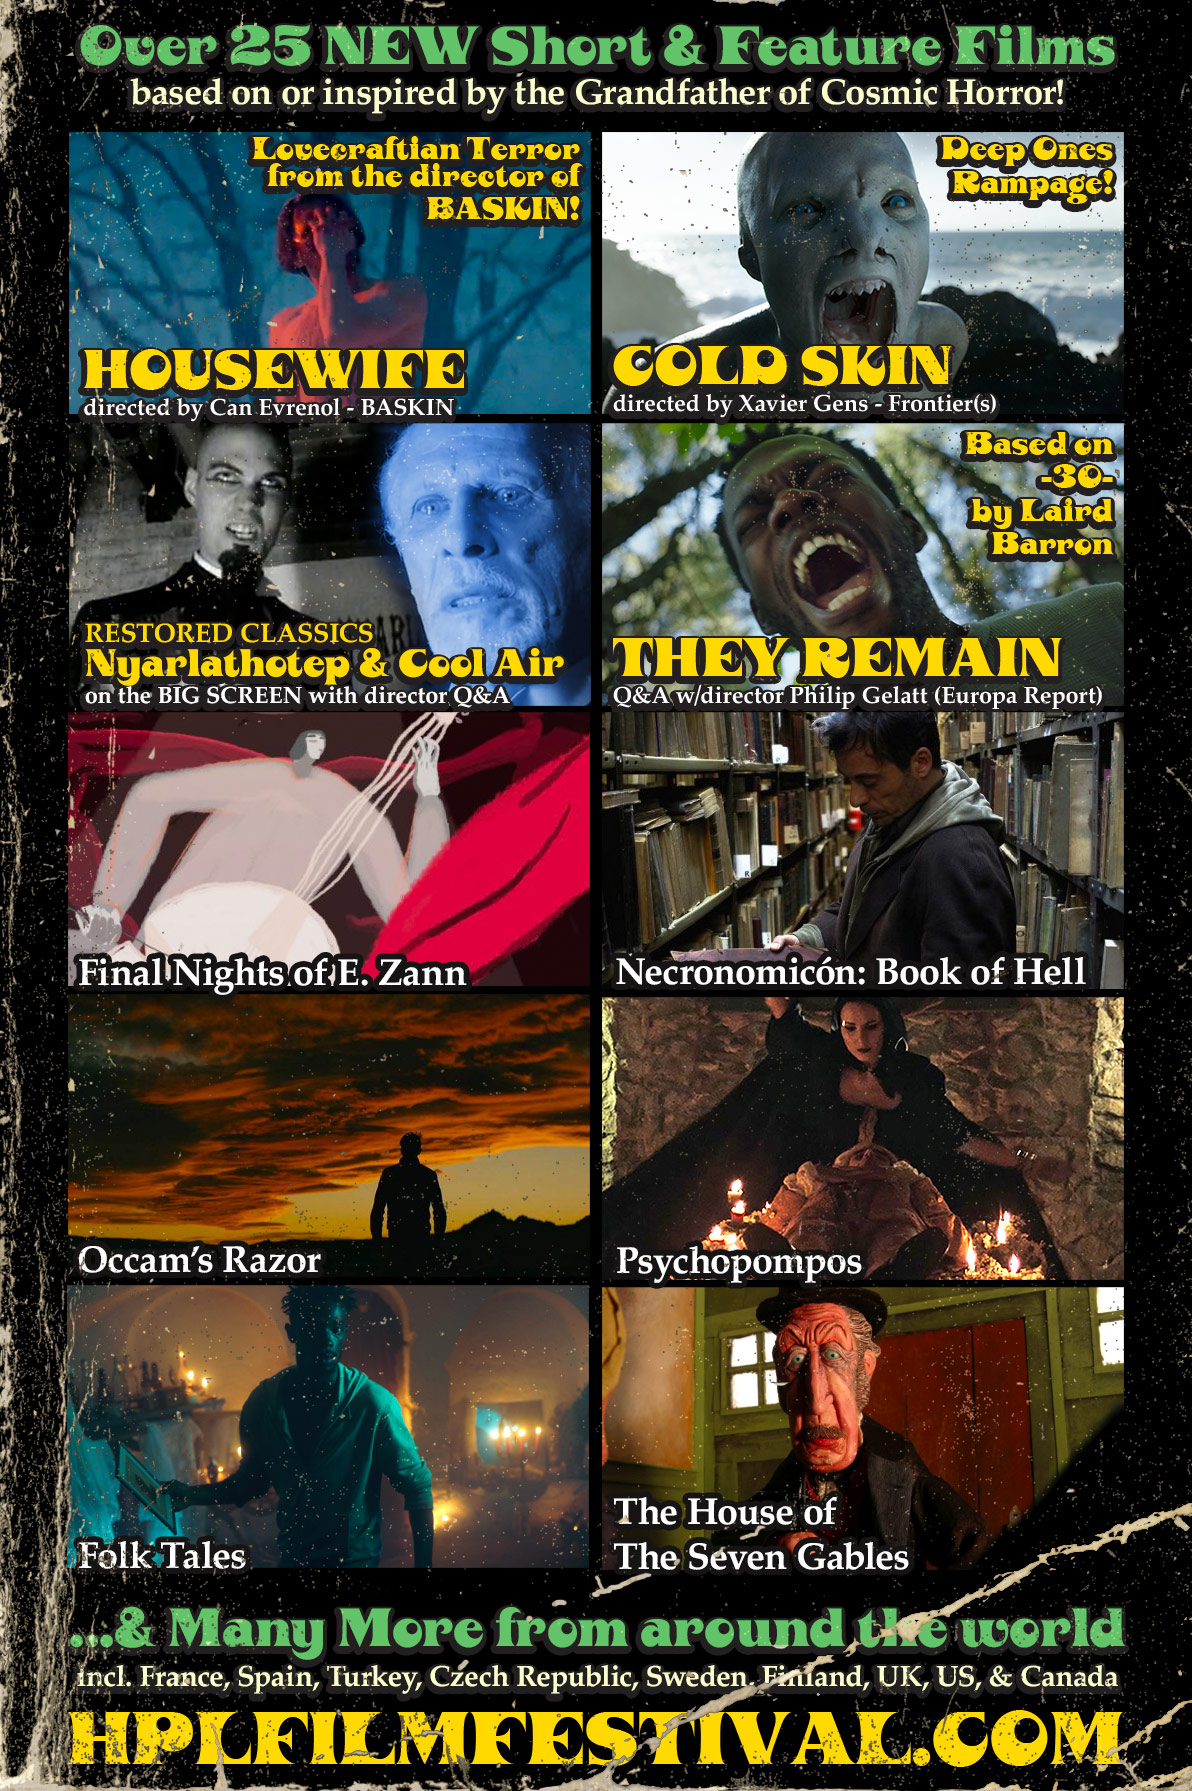 Just a few of the over 2 dozen Lovecraftian films we're showing!